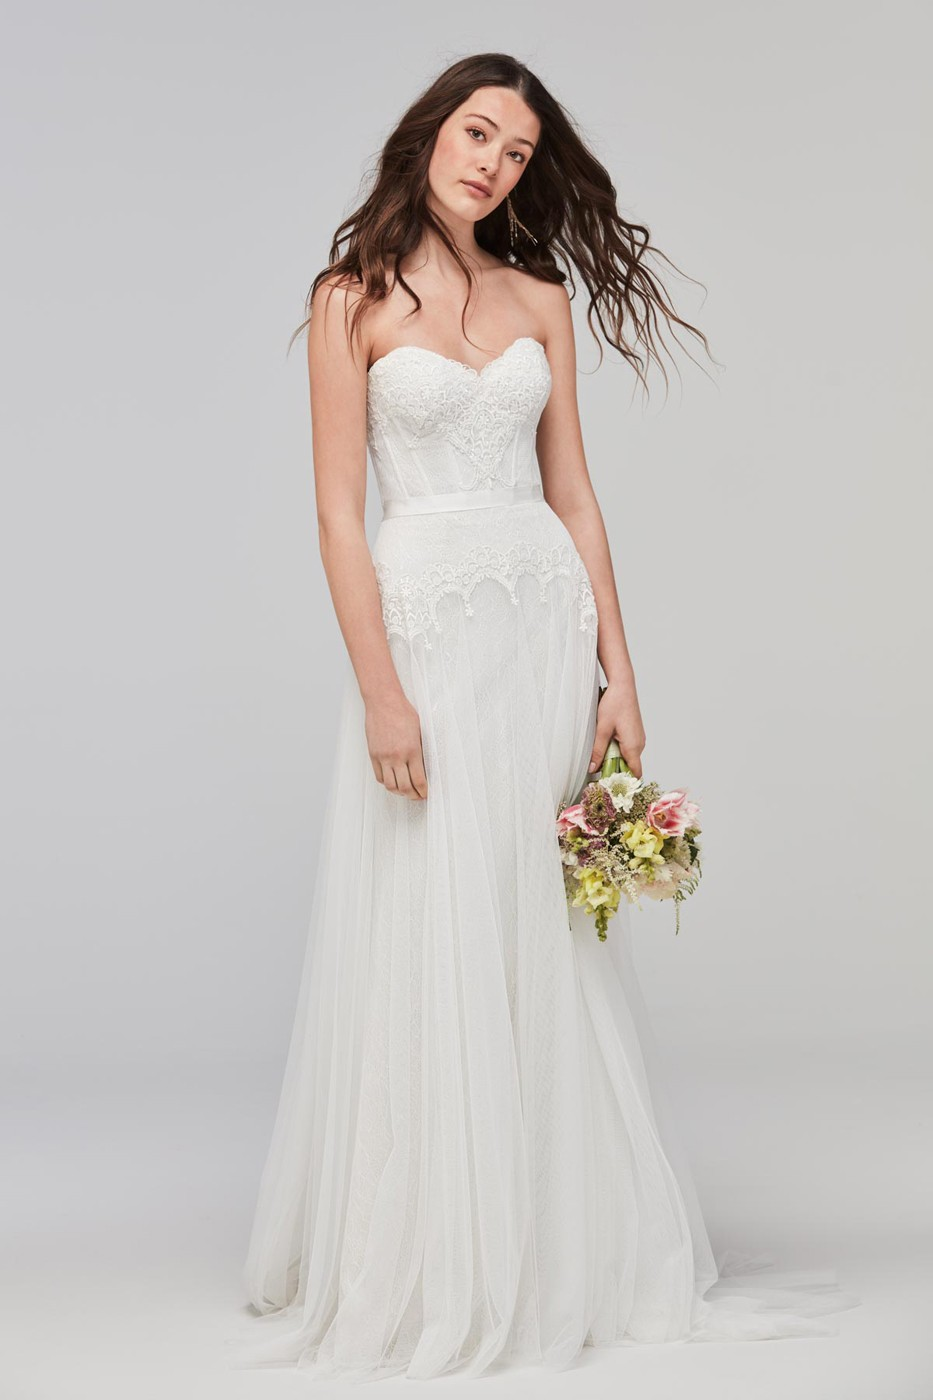 Willowby 59704 lupine strapless wedding dress madamebridal willowby 59704 lupine strapless wedding dress junglespirit Choice Image